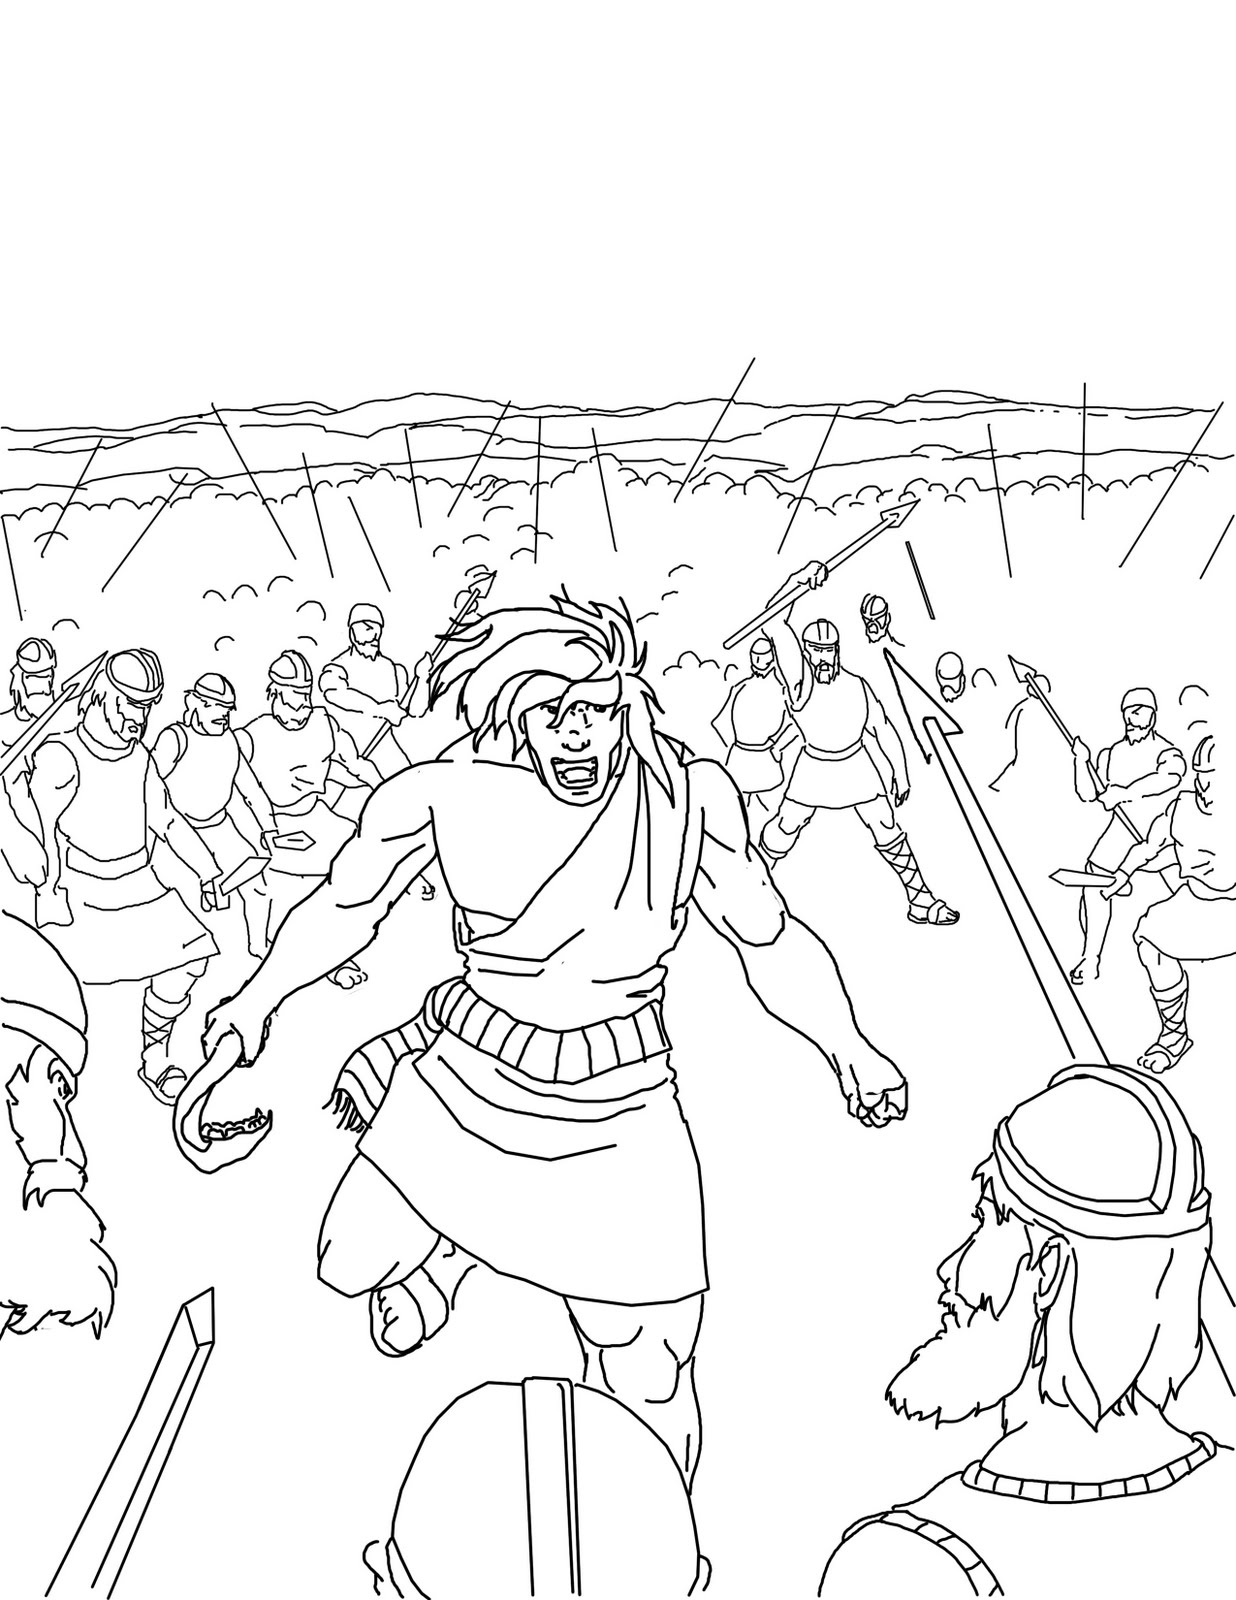 samson bible story coloring pages pin on samson sunday school story samson pages bible coloring